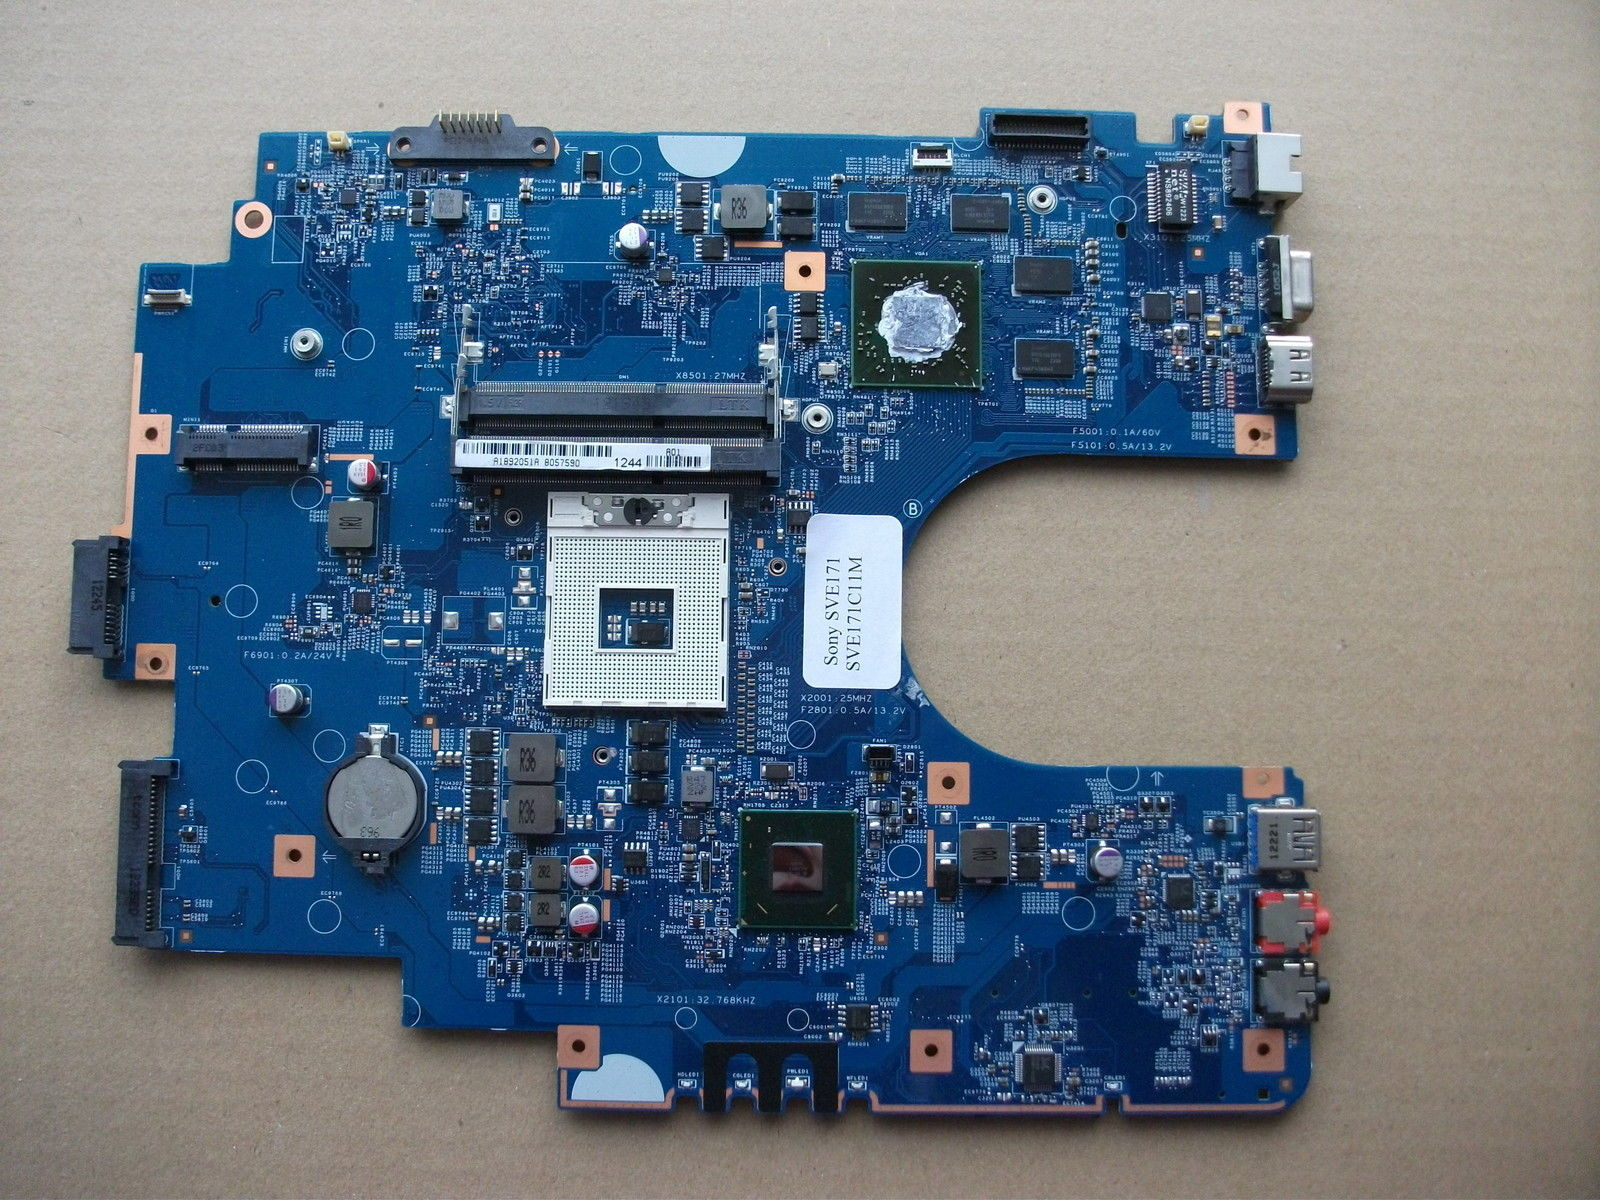 Mbx-267 Z70cr Mb S1204-1 48 4mr05 011 Laptop Motherboard For Son  Mbx-267